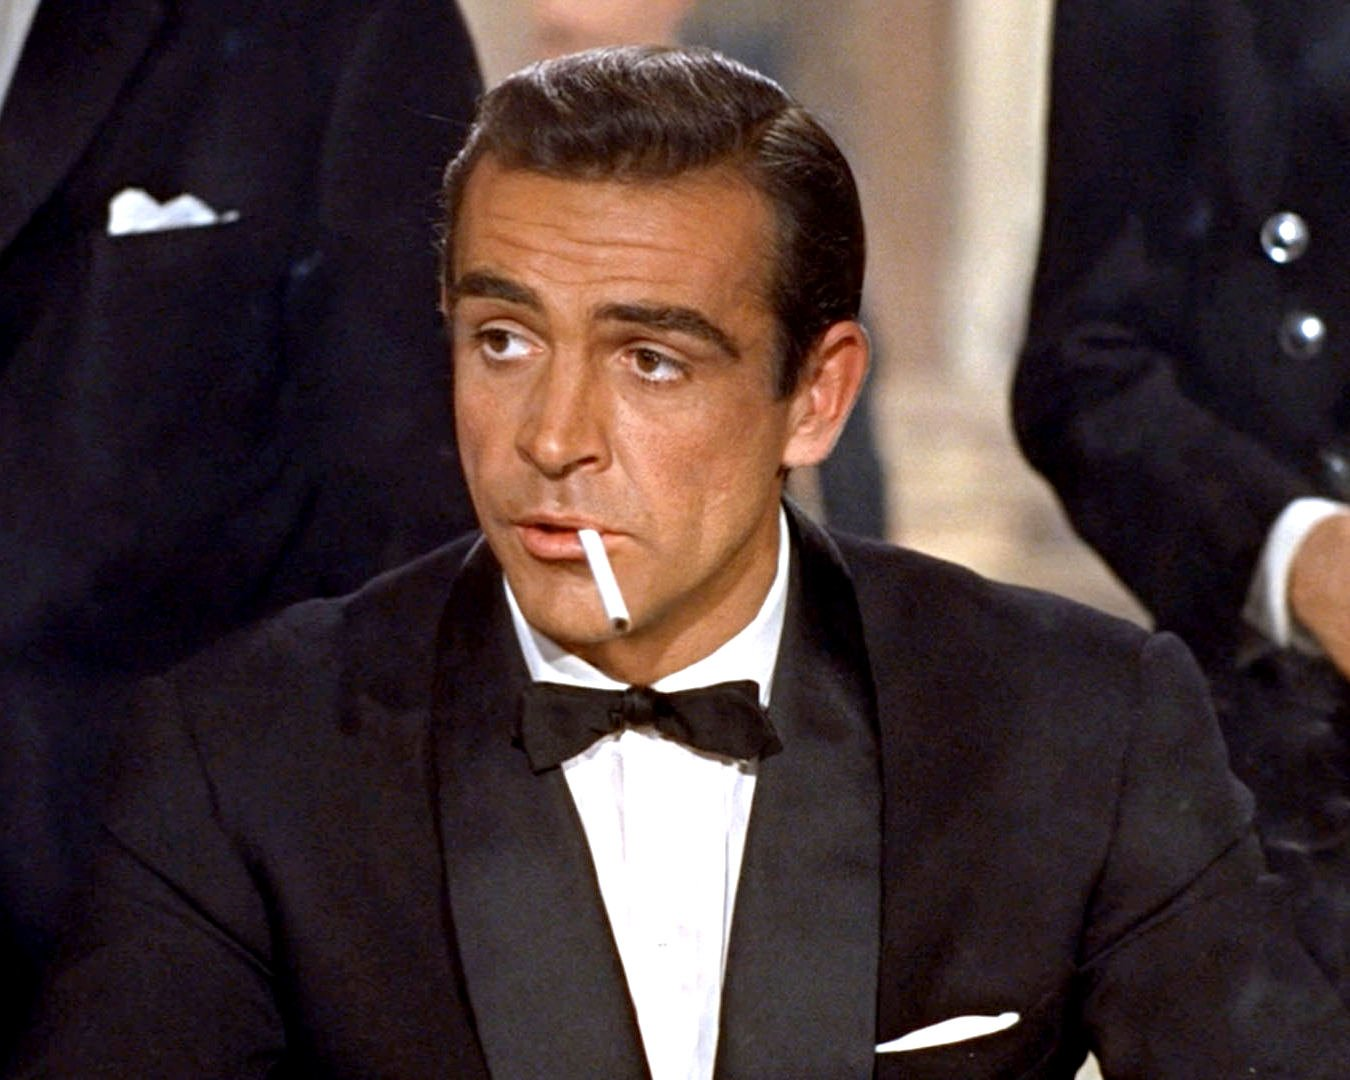 """SEAN CONNERY AS """"JAMES BOND"""" IN THE 1962 FILM """"DR. NO"""" - 8X10 PHOTO (ZY-495)"""